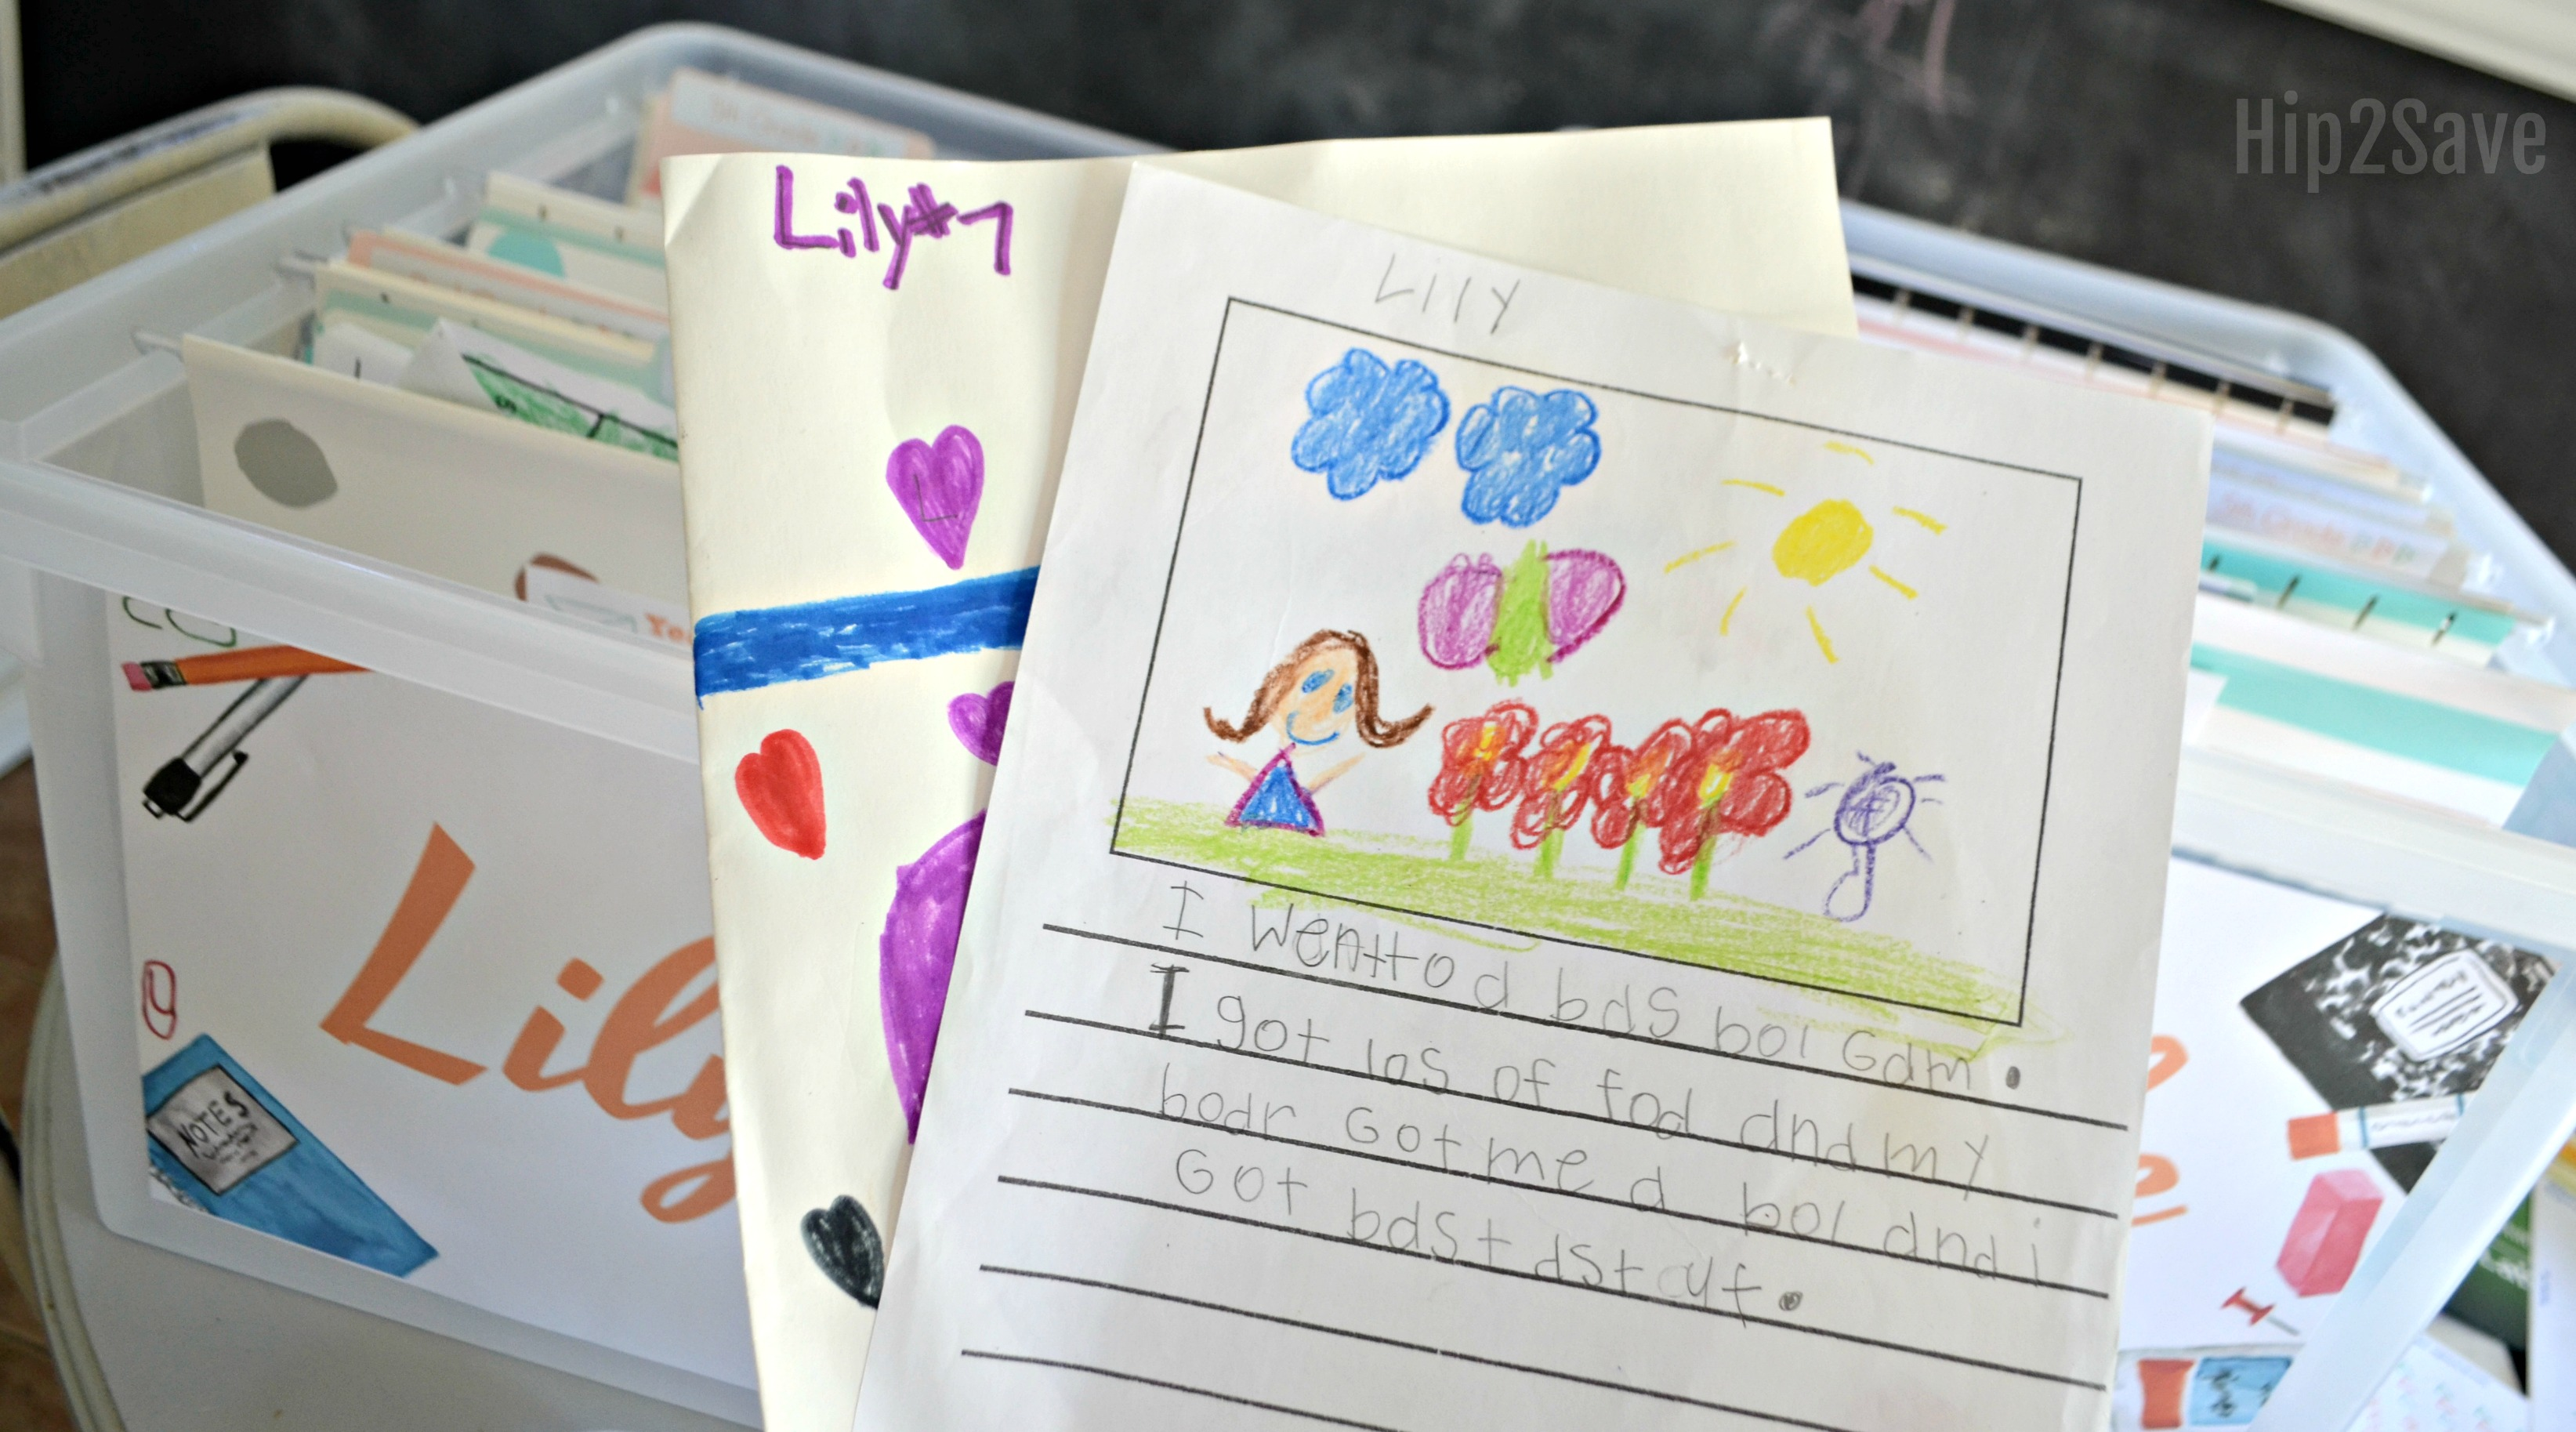 school paper organizer for kids' papers